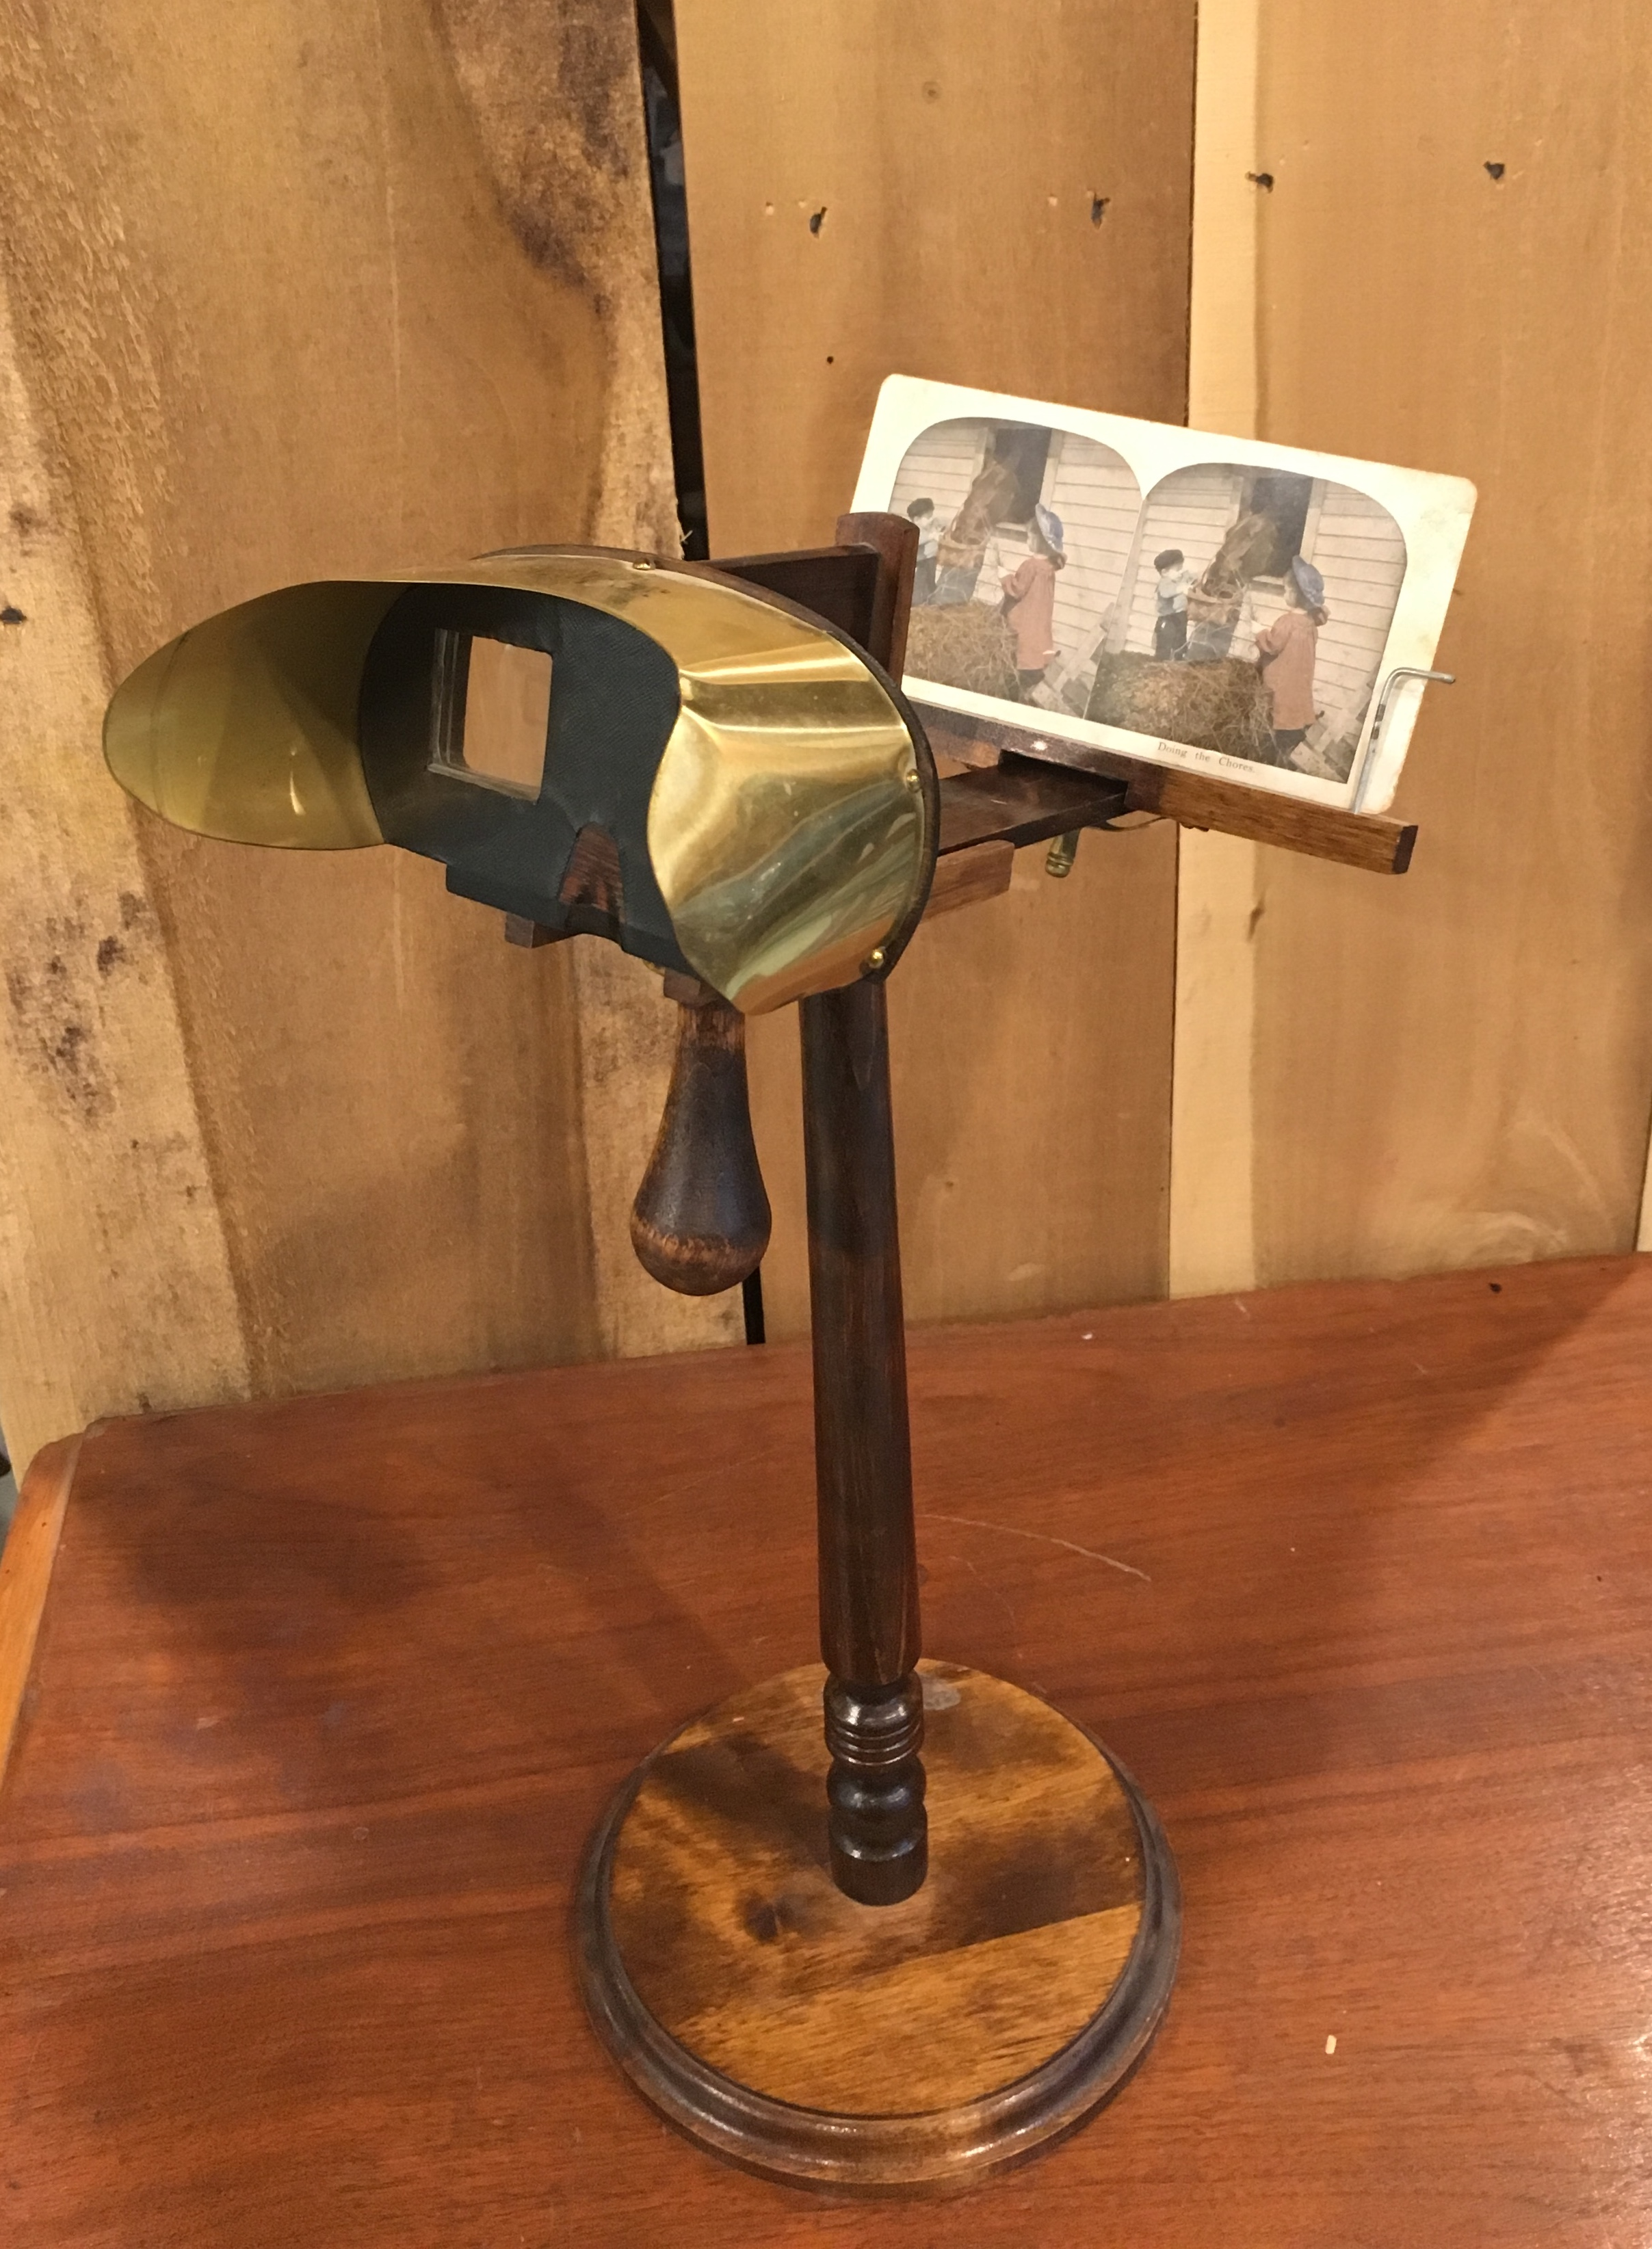 The stereoscope was a popular toy in the early 1900s. This precursor to the View-Master blended two identical pictures together to create a 3-D image.